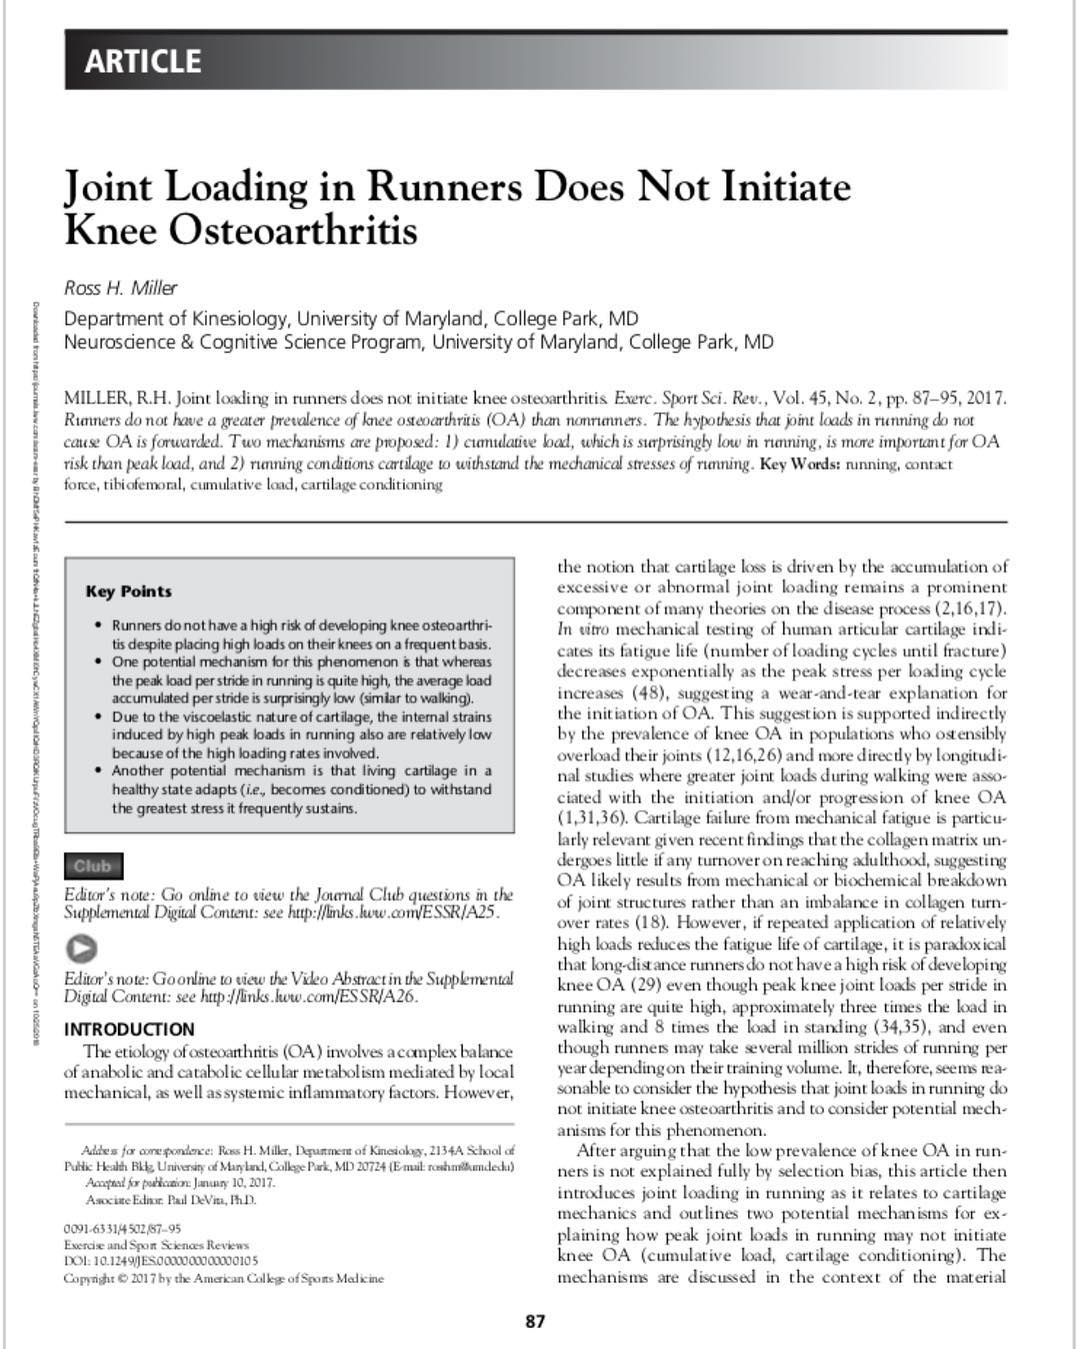 Thoughts on Joint Loading